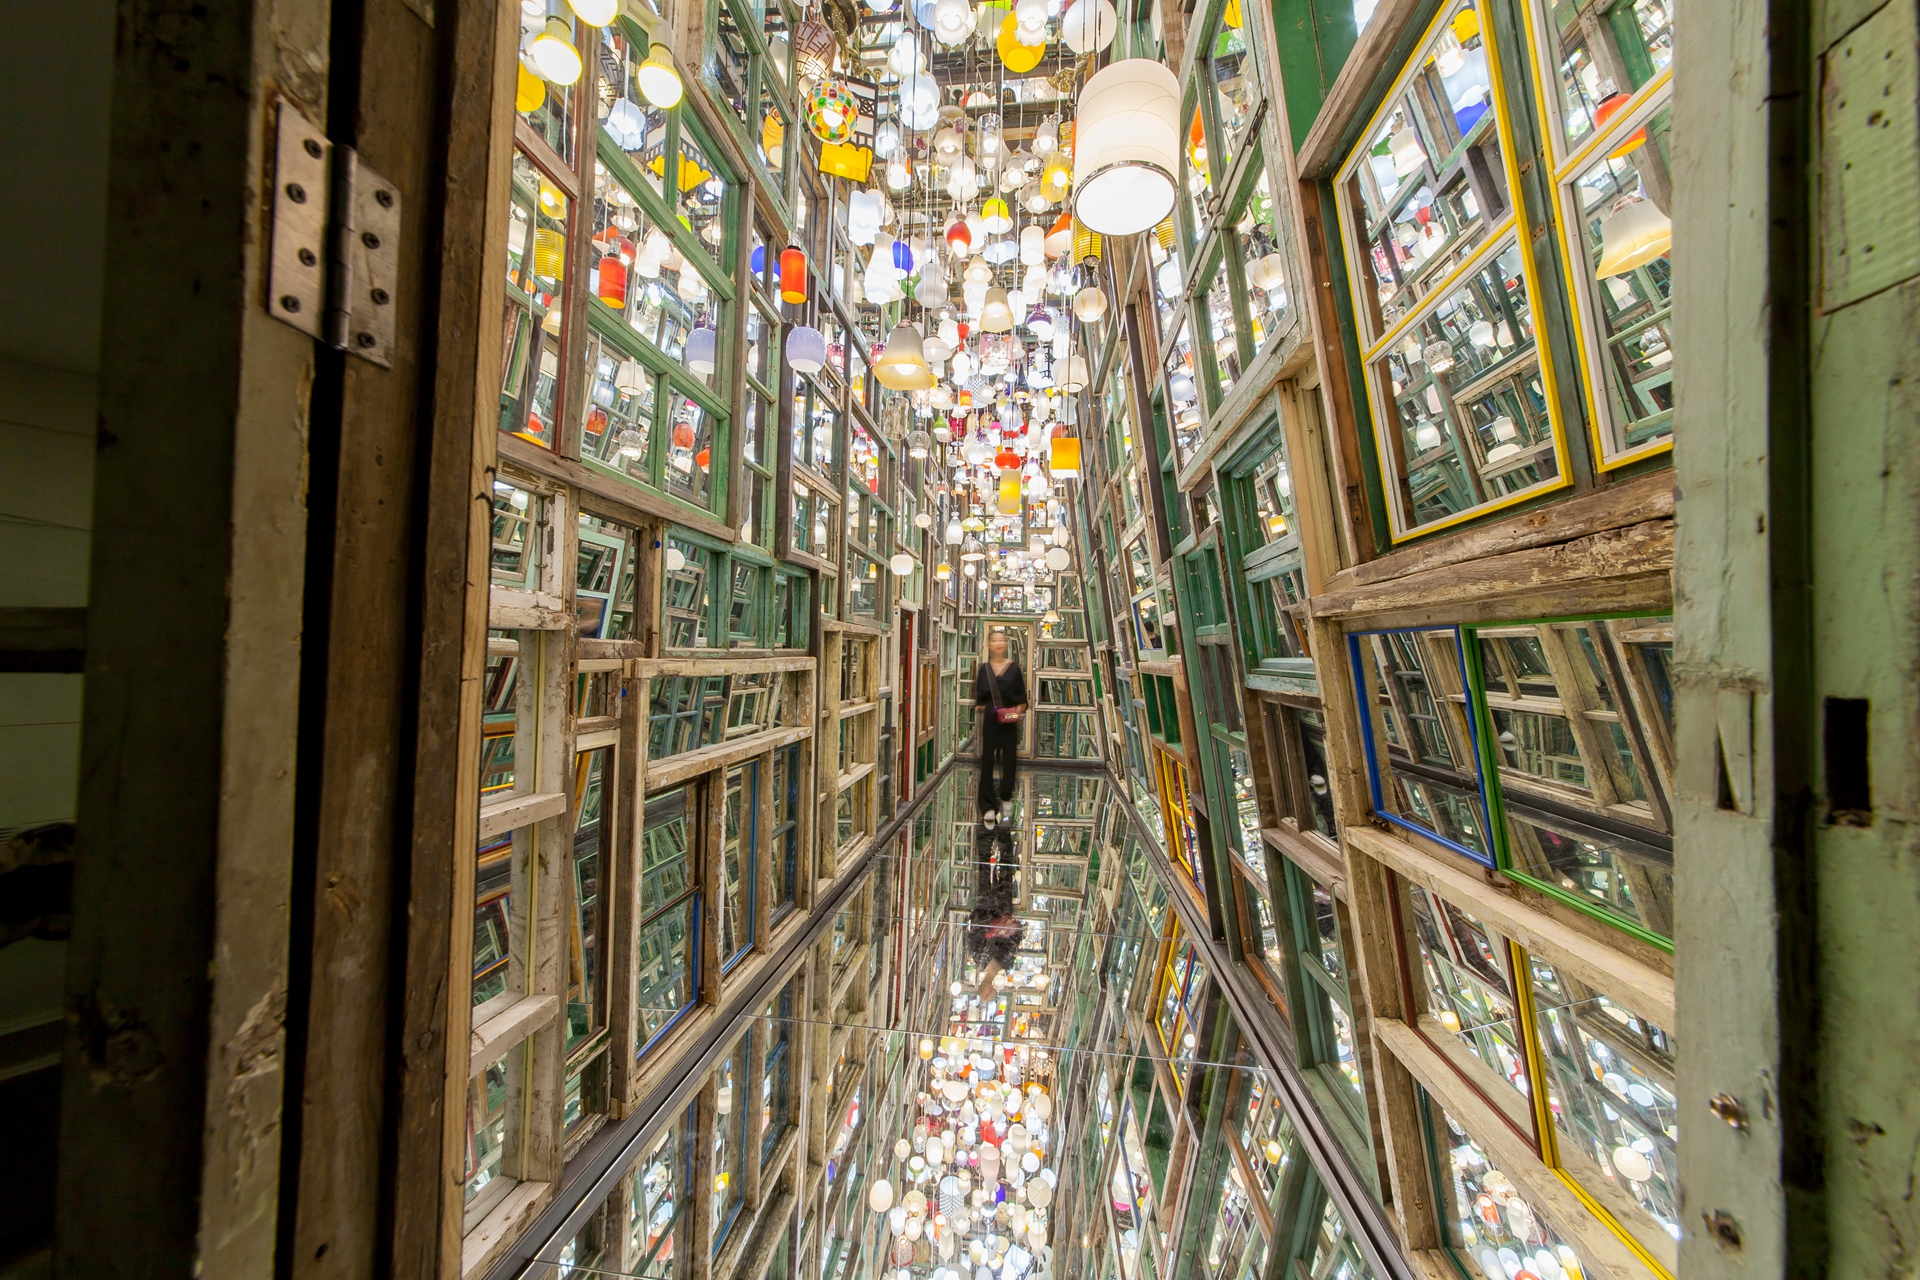 An installation of mirrors forming a reflective hallway by artist Song Dong